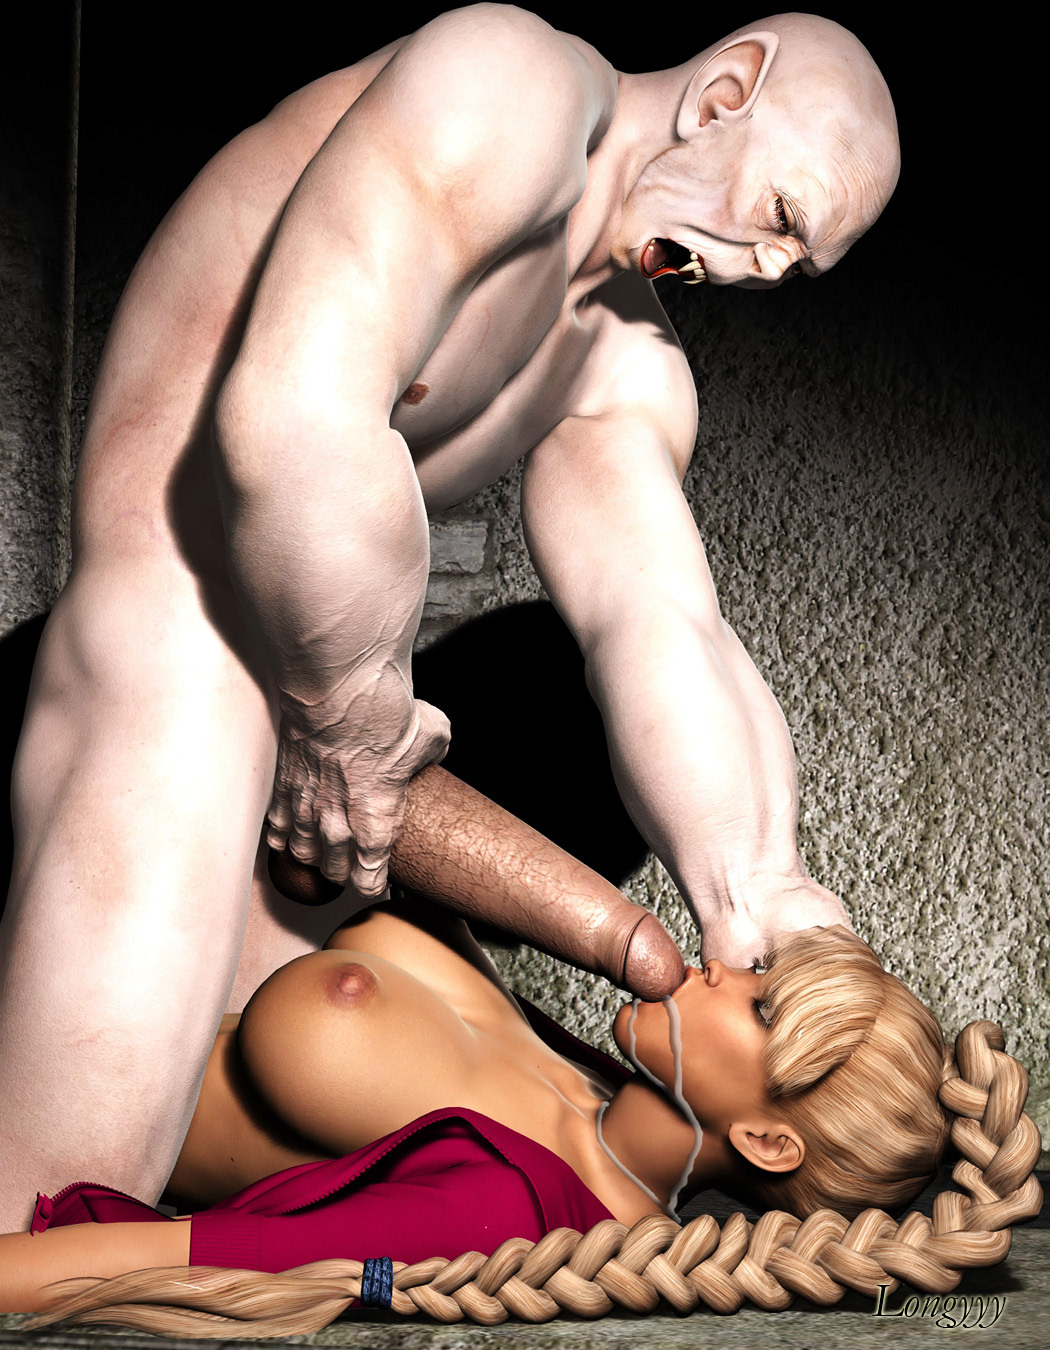 Monster sex pic erotica picture